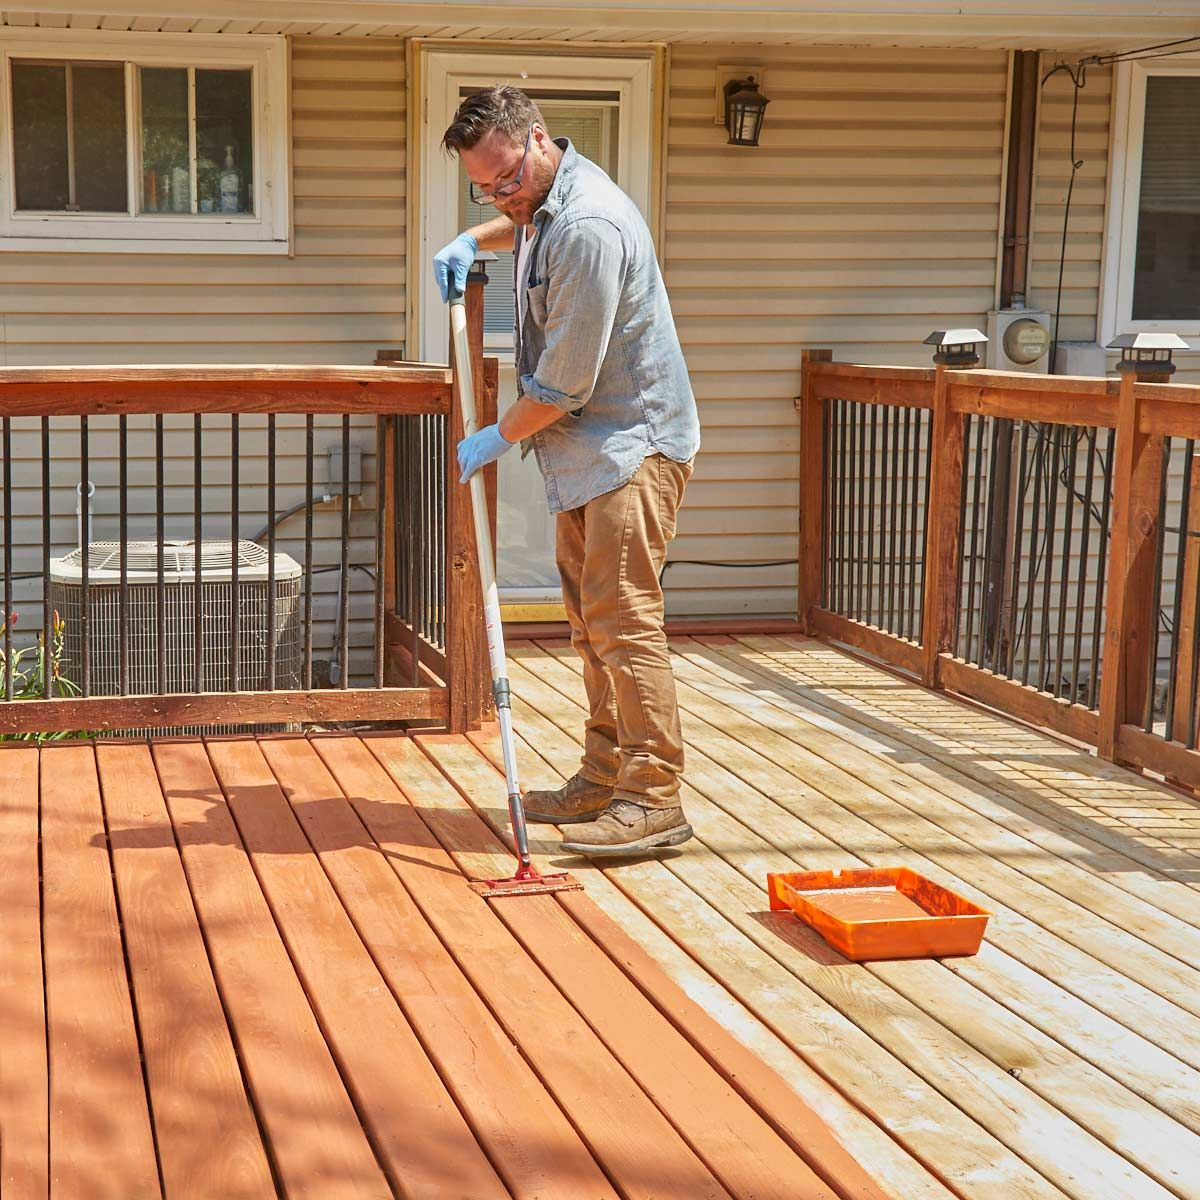 How To Refinish A Deck With Acrylic Based Deck Stain Deck Repair